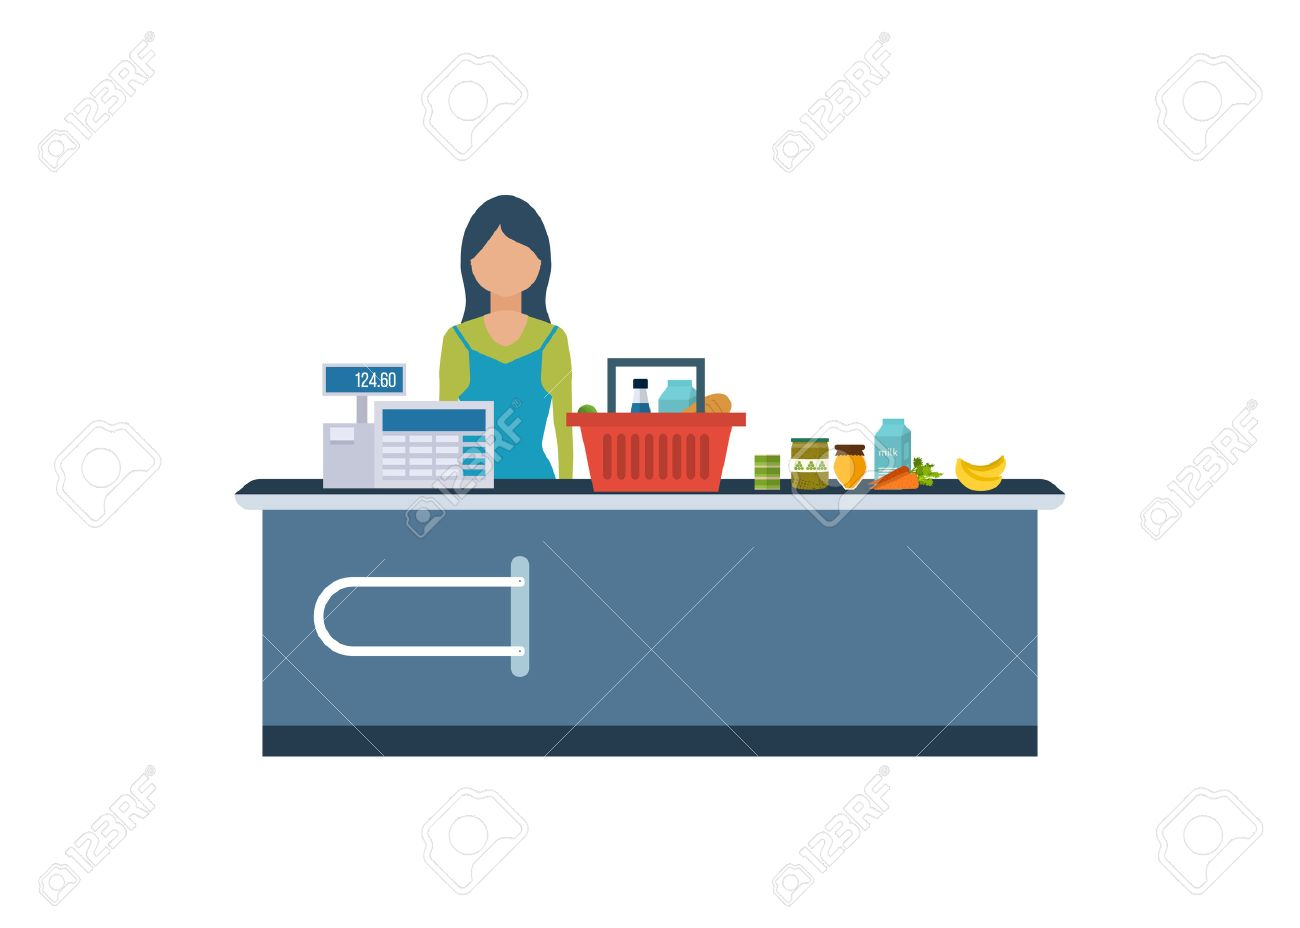 s clerk stock photos pictures royalty s clerk s clerk a young cashier w standing in supermarket s clerk working customers